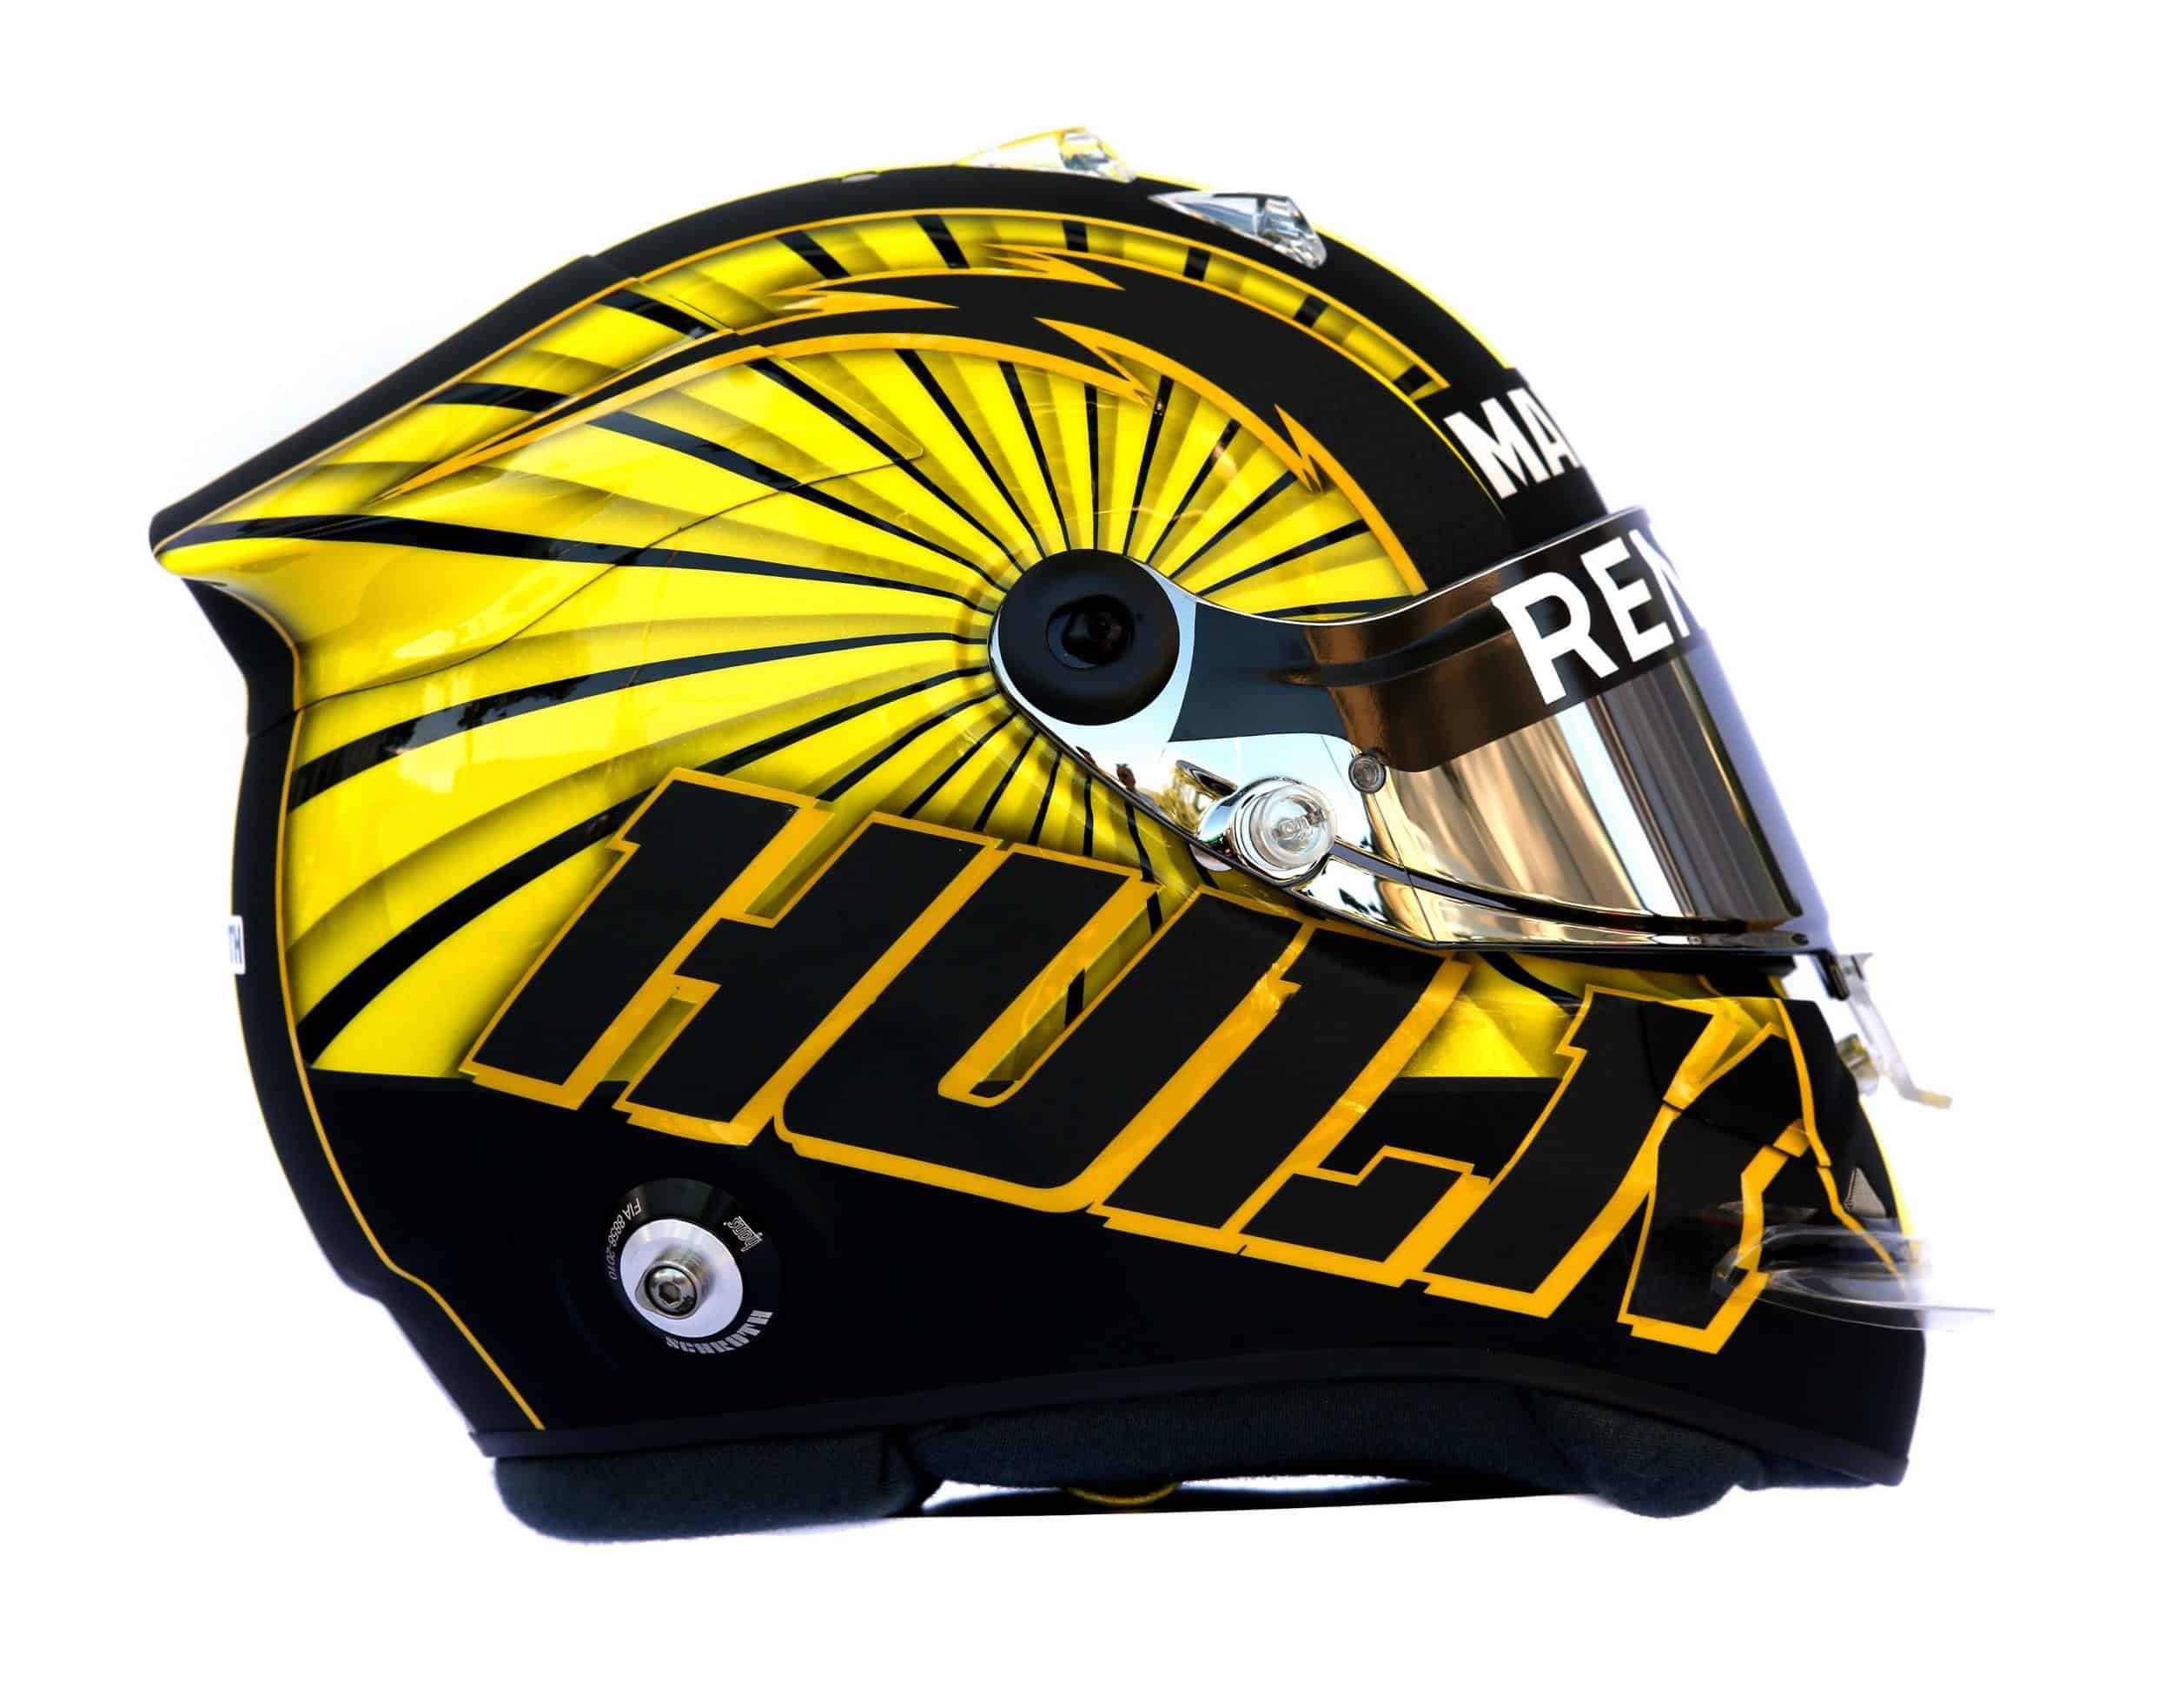 2019 F1 Nico Hulkenberg Renault helmet right side Photo Renault Edited by MAXF1net